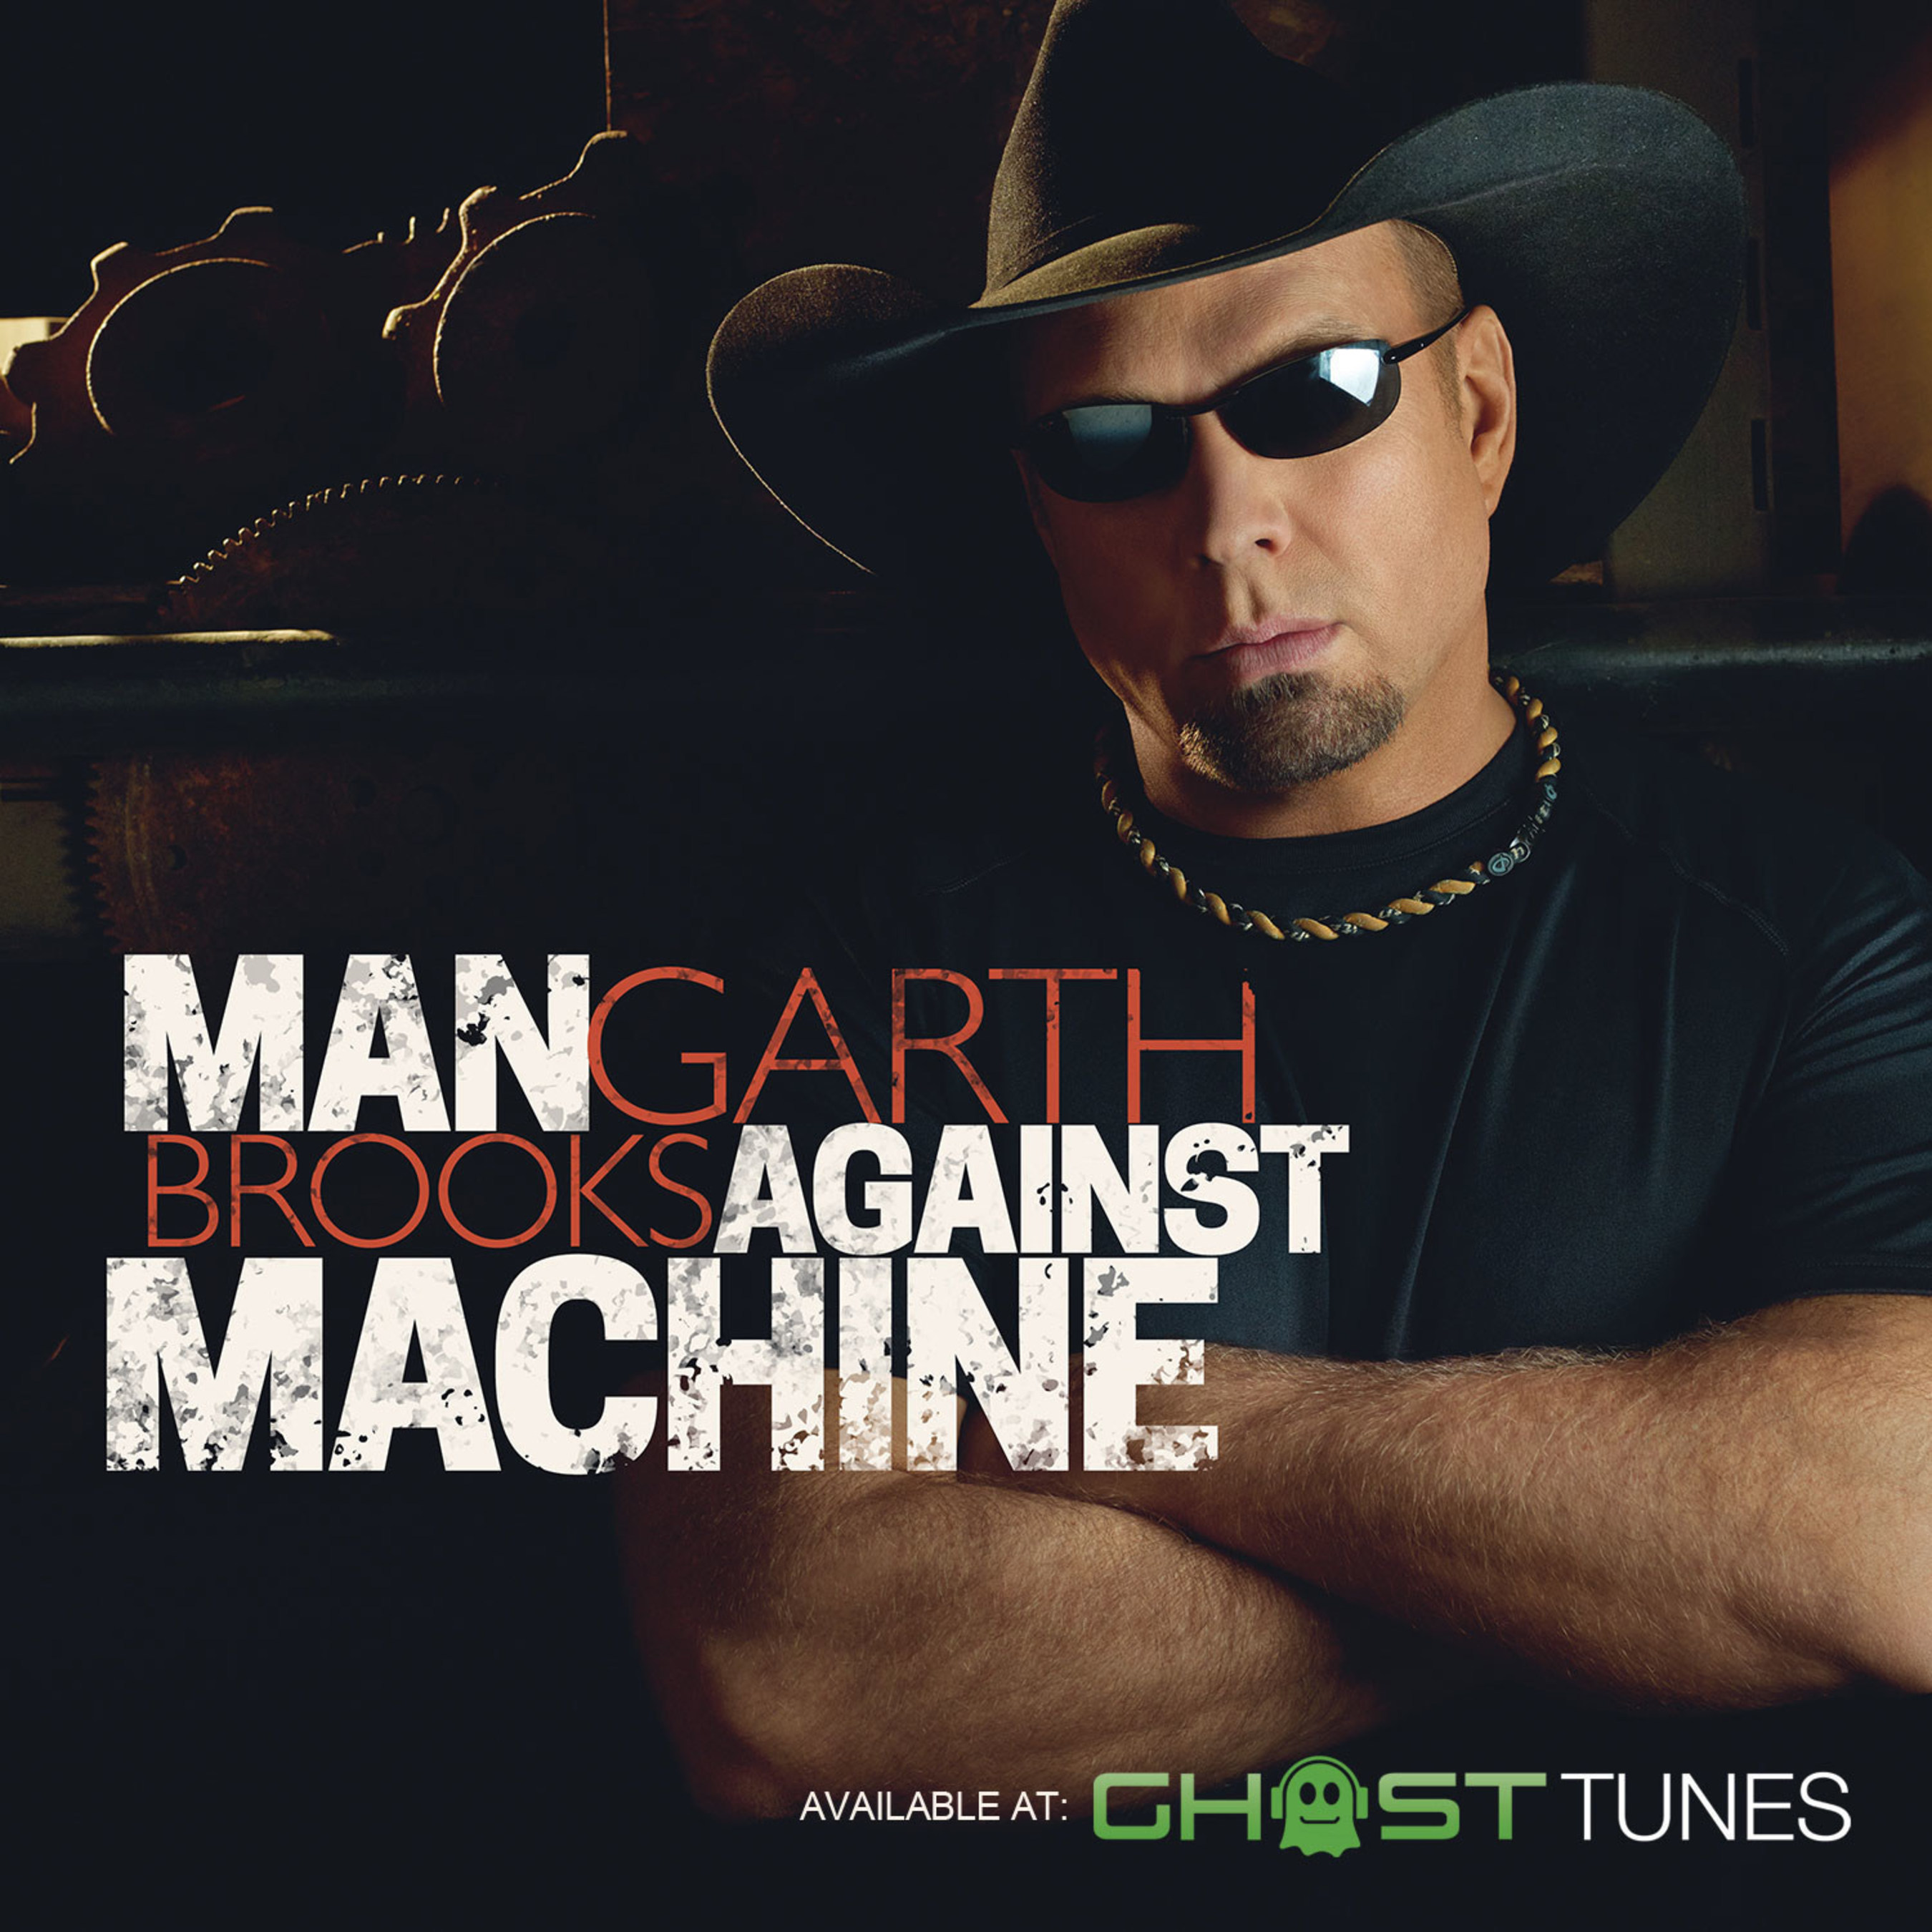 The 13-year wait ends tonight at midnight for Garth Brooks' fans as the artist's new album - Man ...